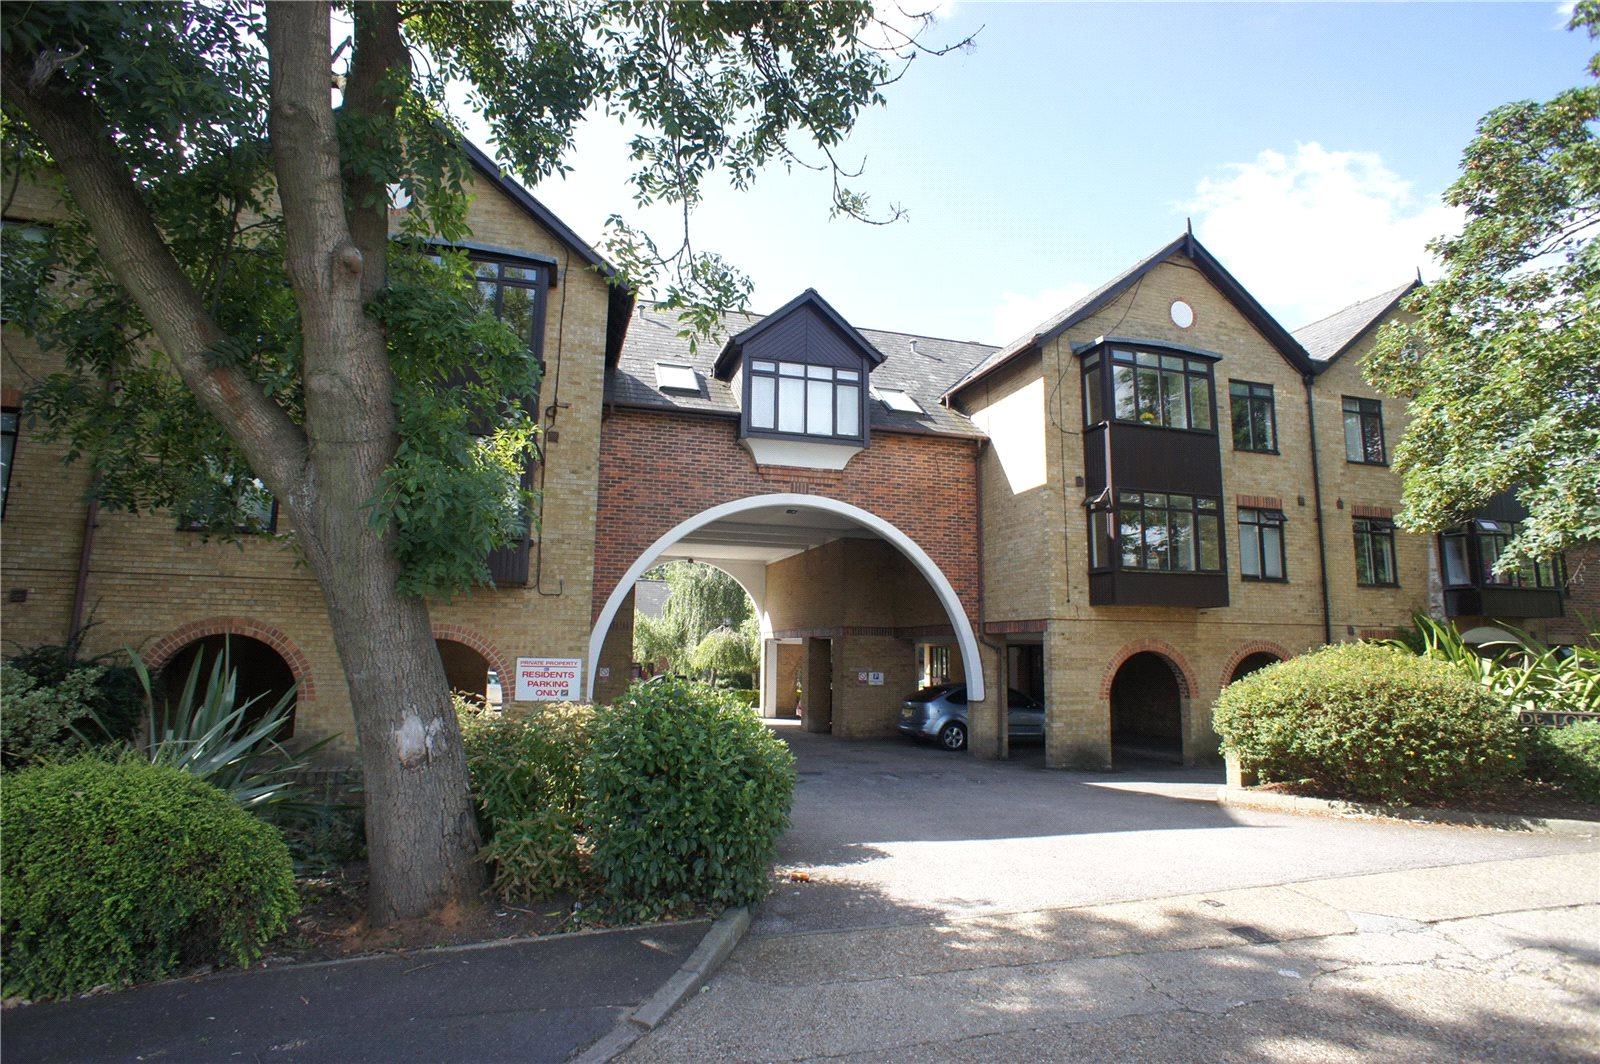 Parkside Lodge, Belvedere, Kent, DA17